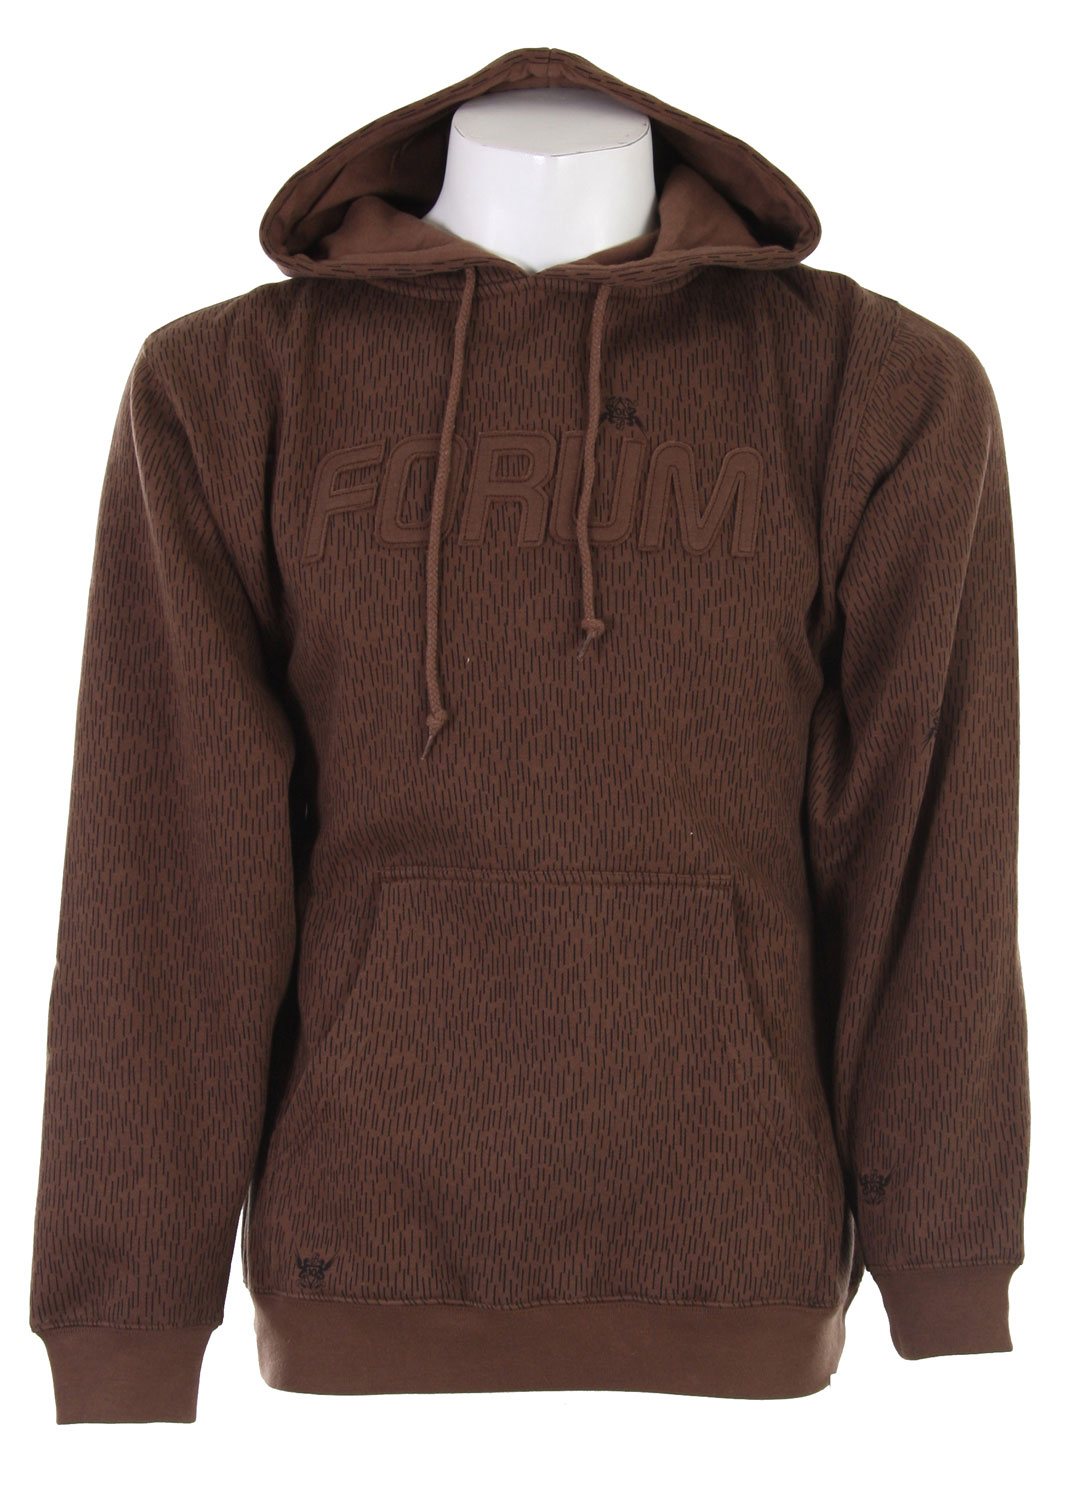 Put on this great Forum pull over hoodie and get out there. It looks great and keeps you warm as well! It features an embroidered Forum logo on the front, as well as a snazzy pattern all over. The roomy pocket in the front is big enough to keep all of your necessities or, if you want, just your hands when it gets cold. This is an awesome hoodie in a stylish pattern and classic cut.Key Features of the Forum Dash Camo Custom Hoodie Dash Camo: 80% Cotton/20% Polyester - $16.76